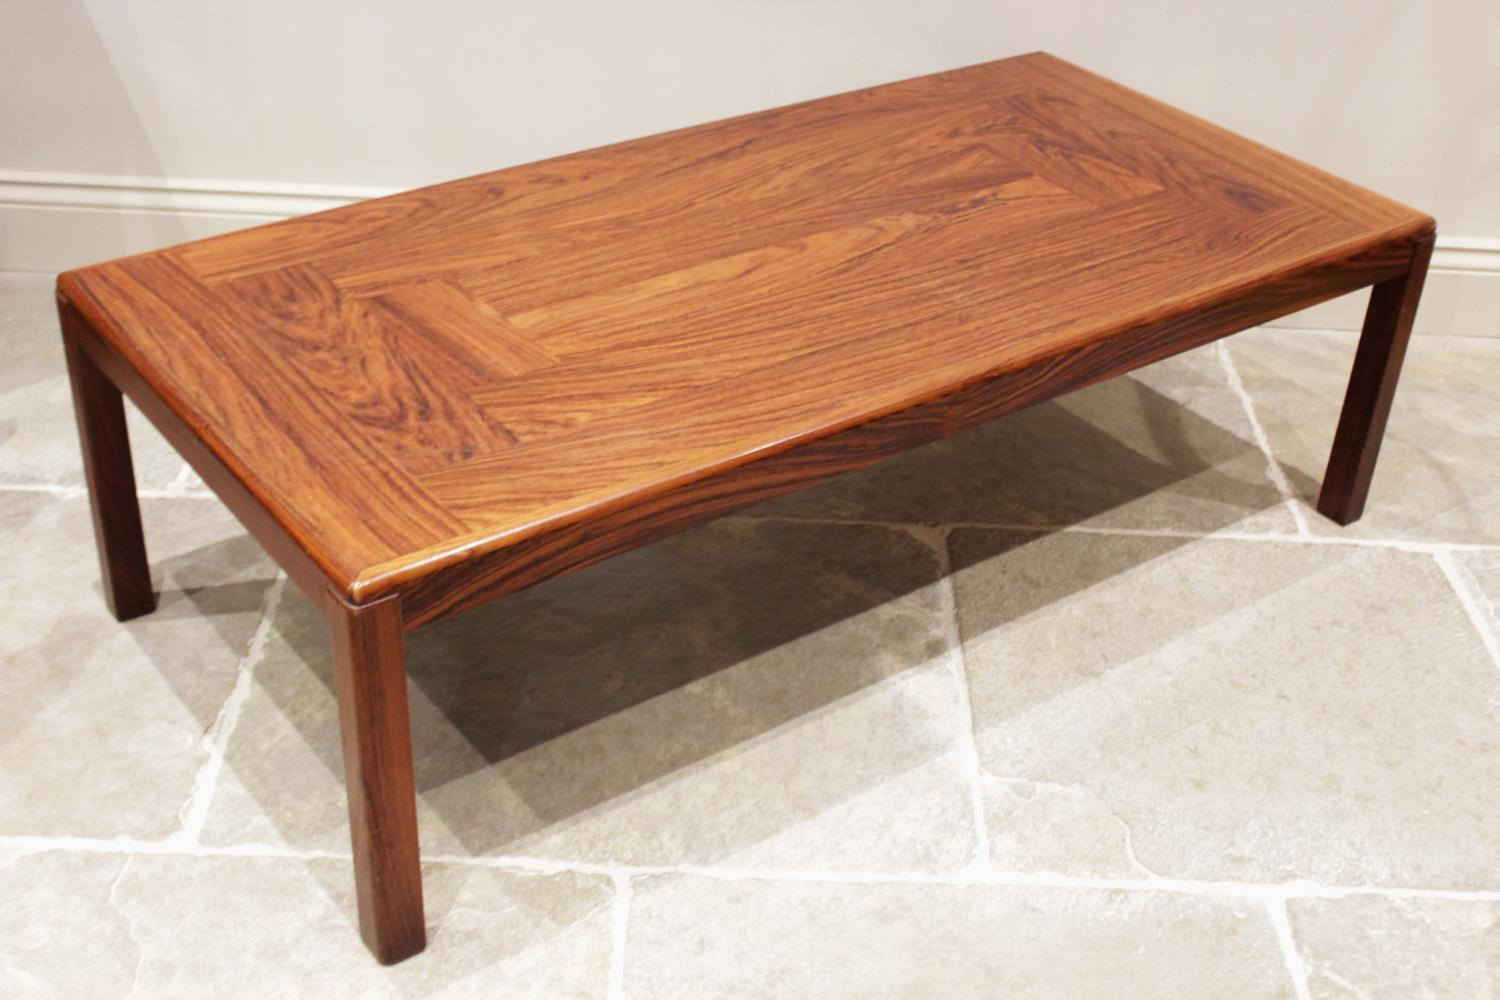 A mid century rosewood coffee table, probably Indian rosewood, the rectangular top on rounded legs